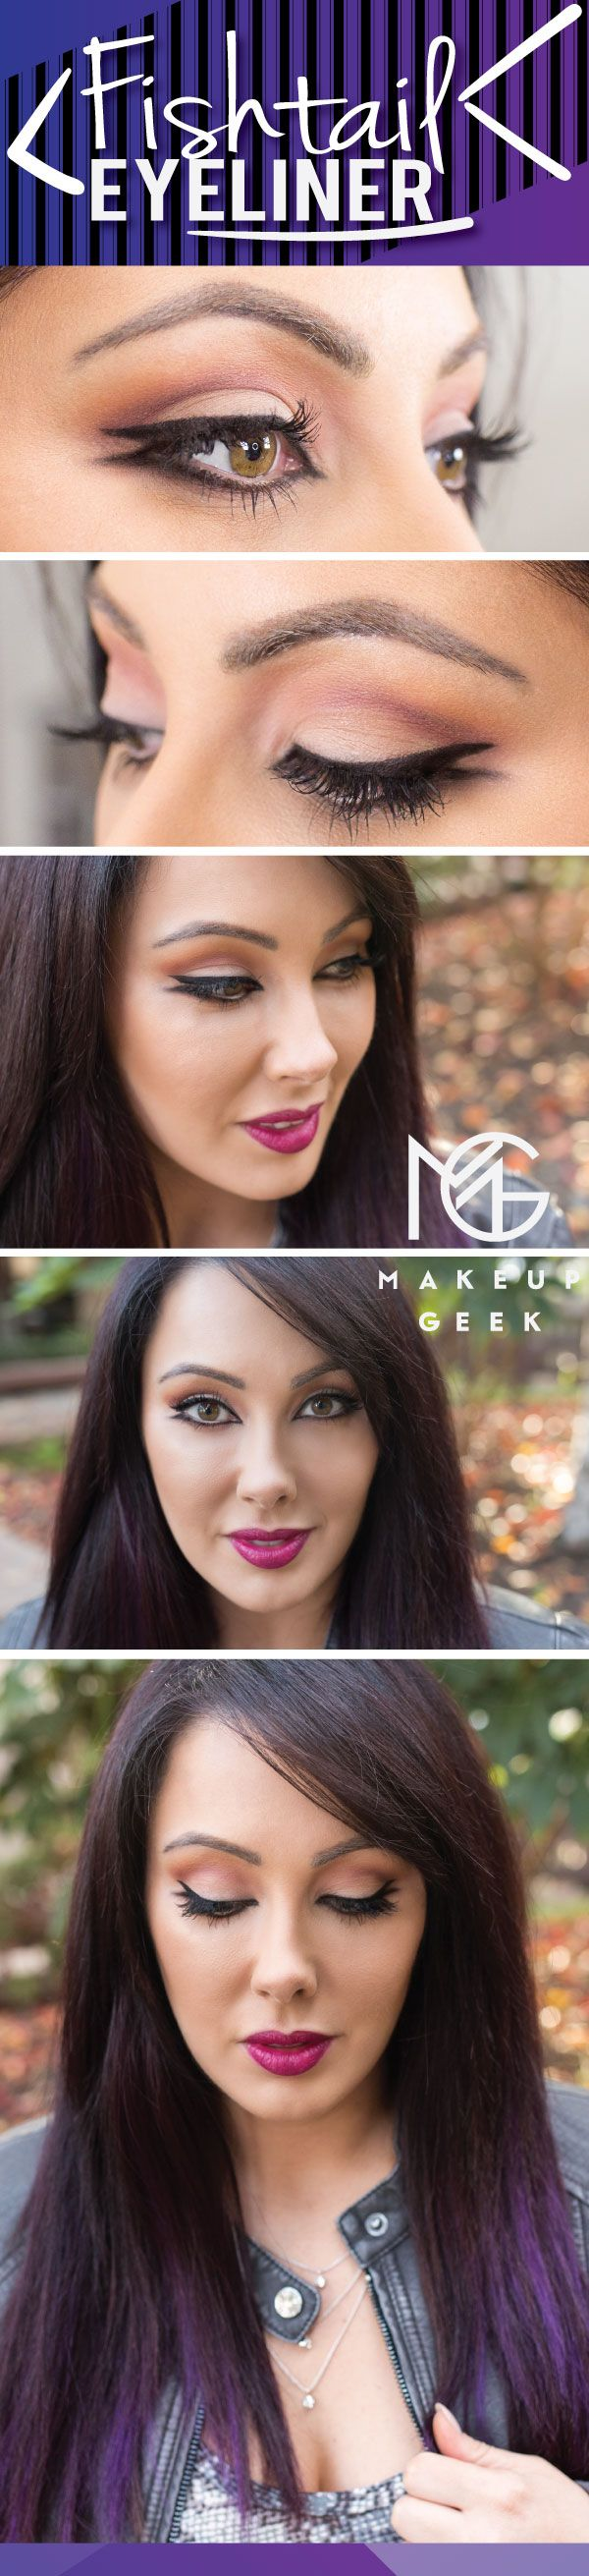 Fishtail Liner look by Marlena using Makeup Geek's